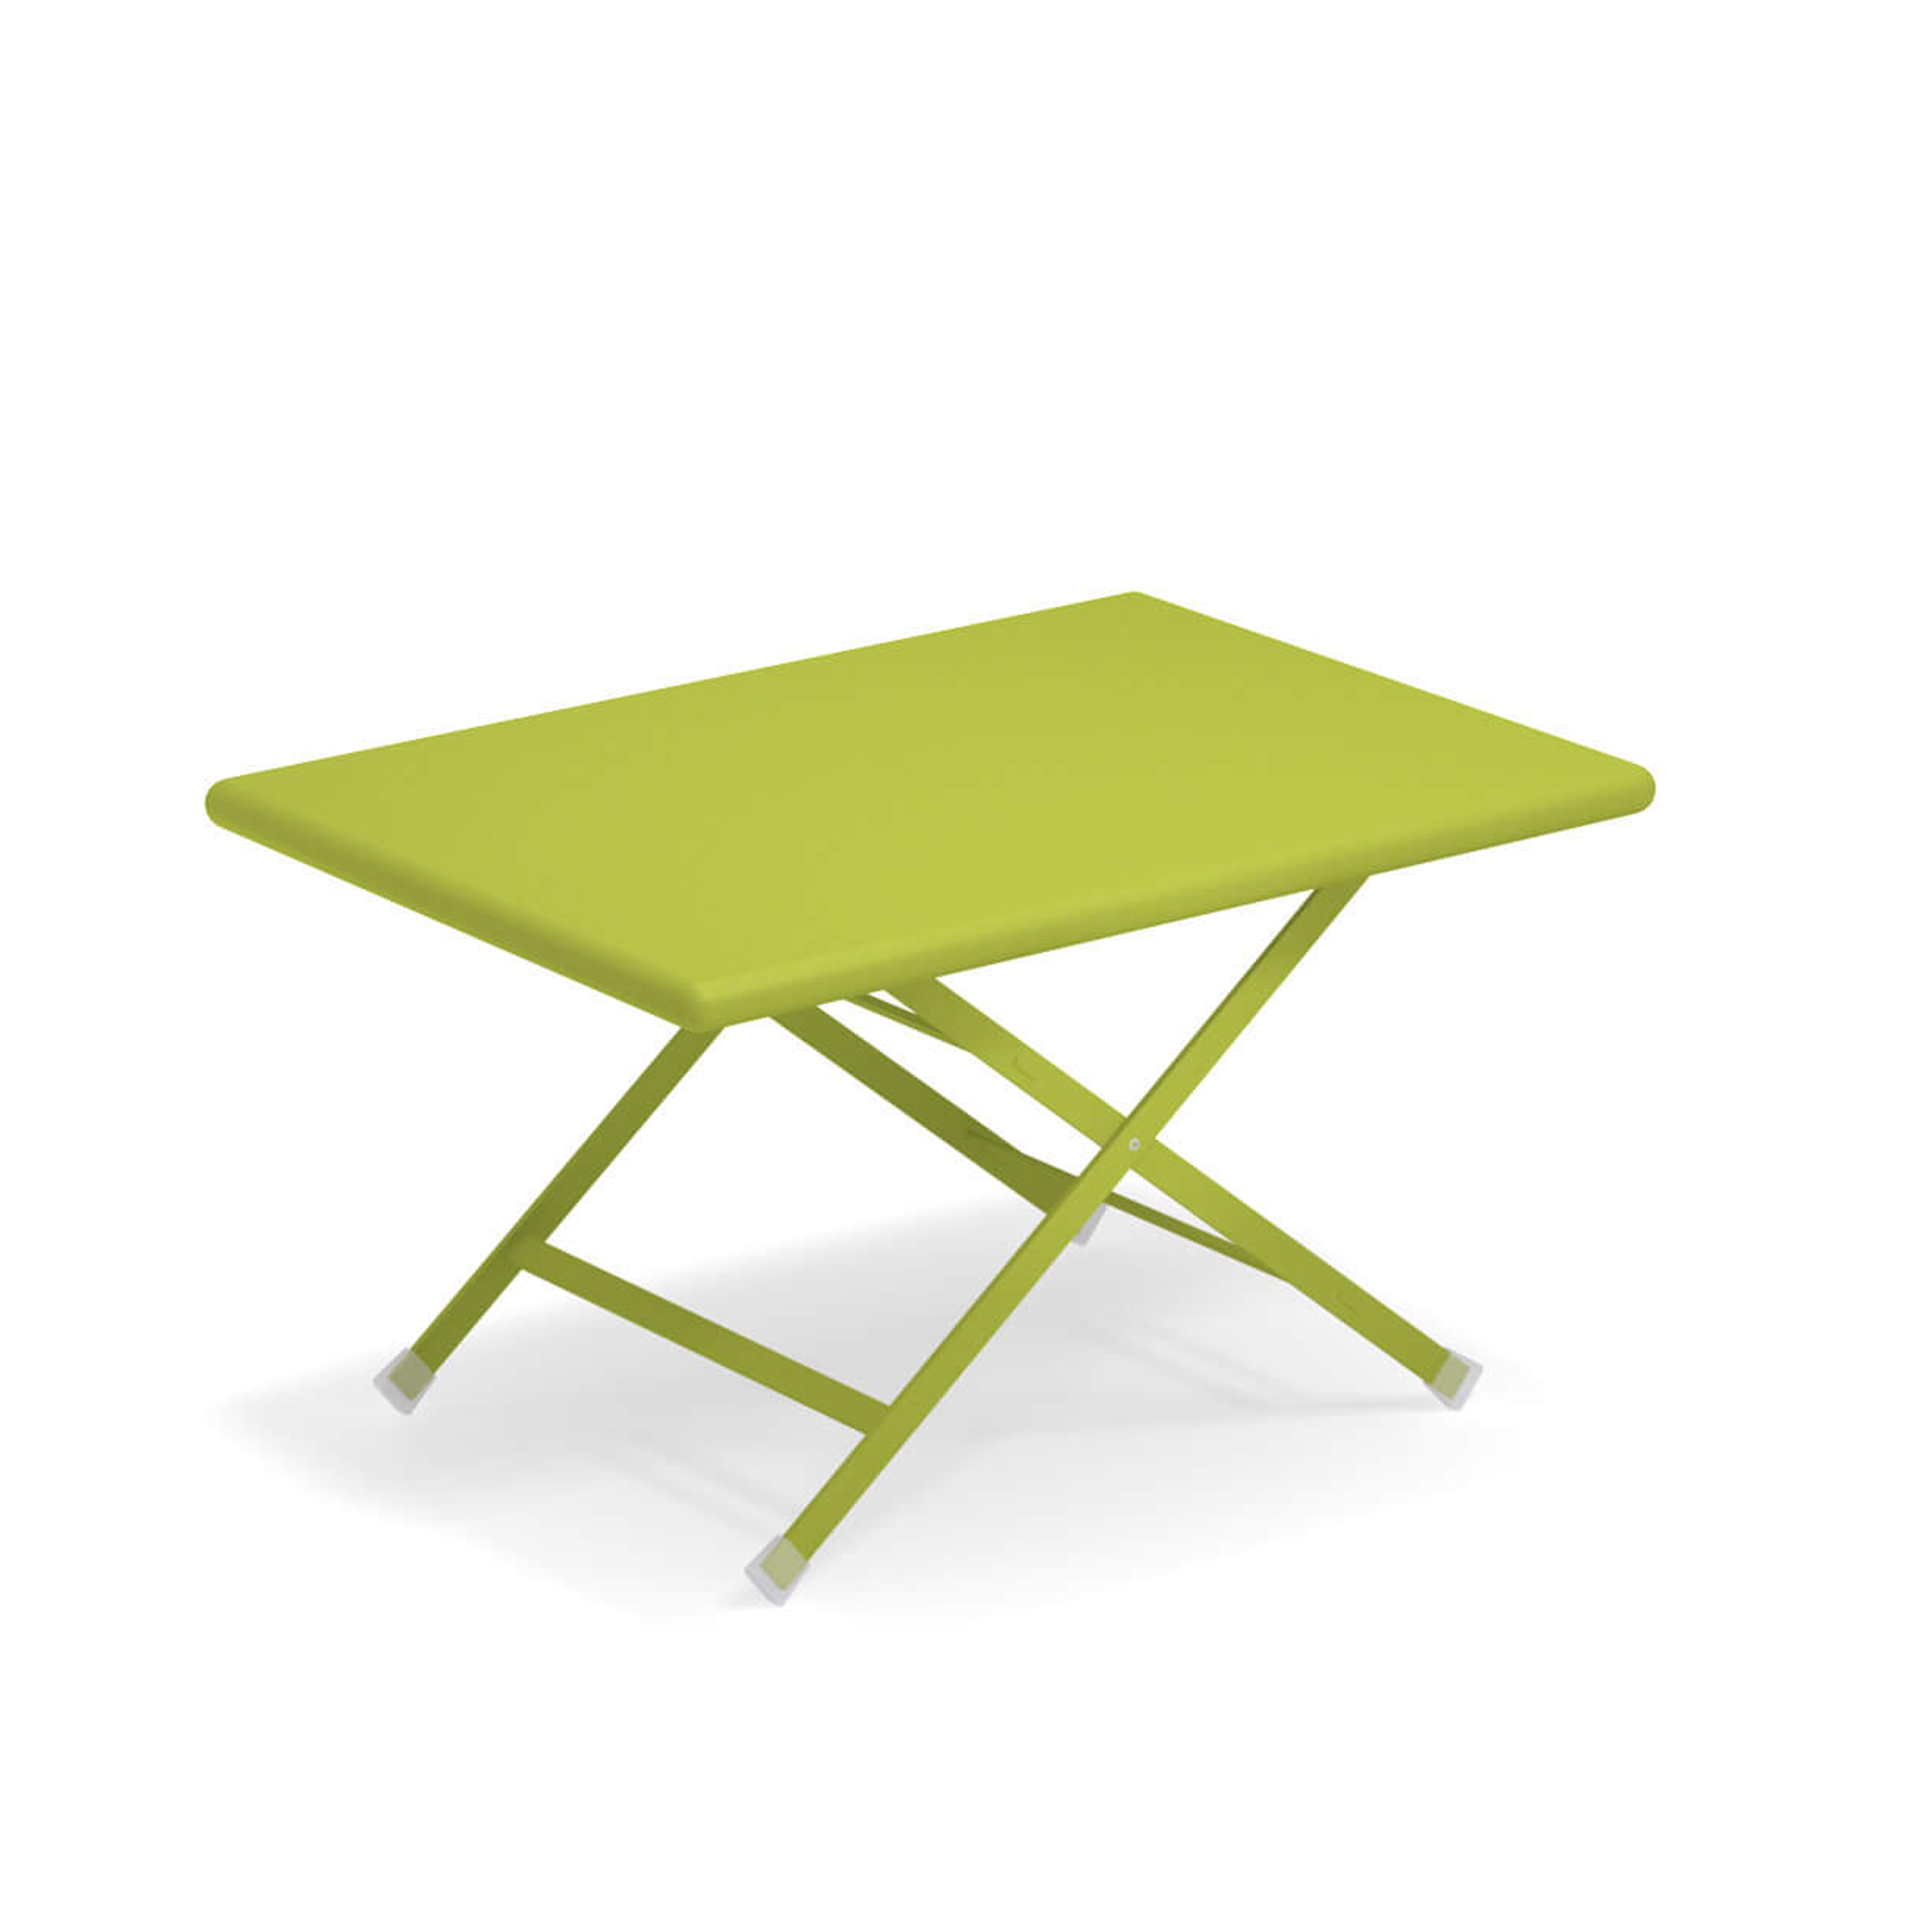 Arc en Ciel Folding Coffee Table - <p>A range of colourful solutions to outdoor living, equally suited to balconies at home or large green gardens. Different sized tables, chairs with or without armrests and footrests, all of which can be folded making this furniture both informal and dynamic. This collection, made from steel, is full of bright, eye-catching solutions that enliven every context thanks to the wide choice ofcoloursavailable.</p>  | Matter of Stuff